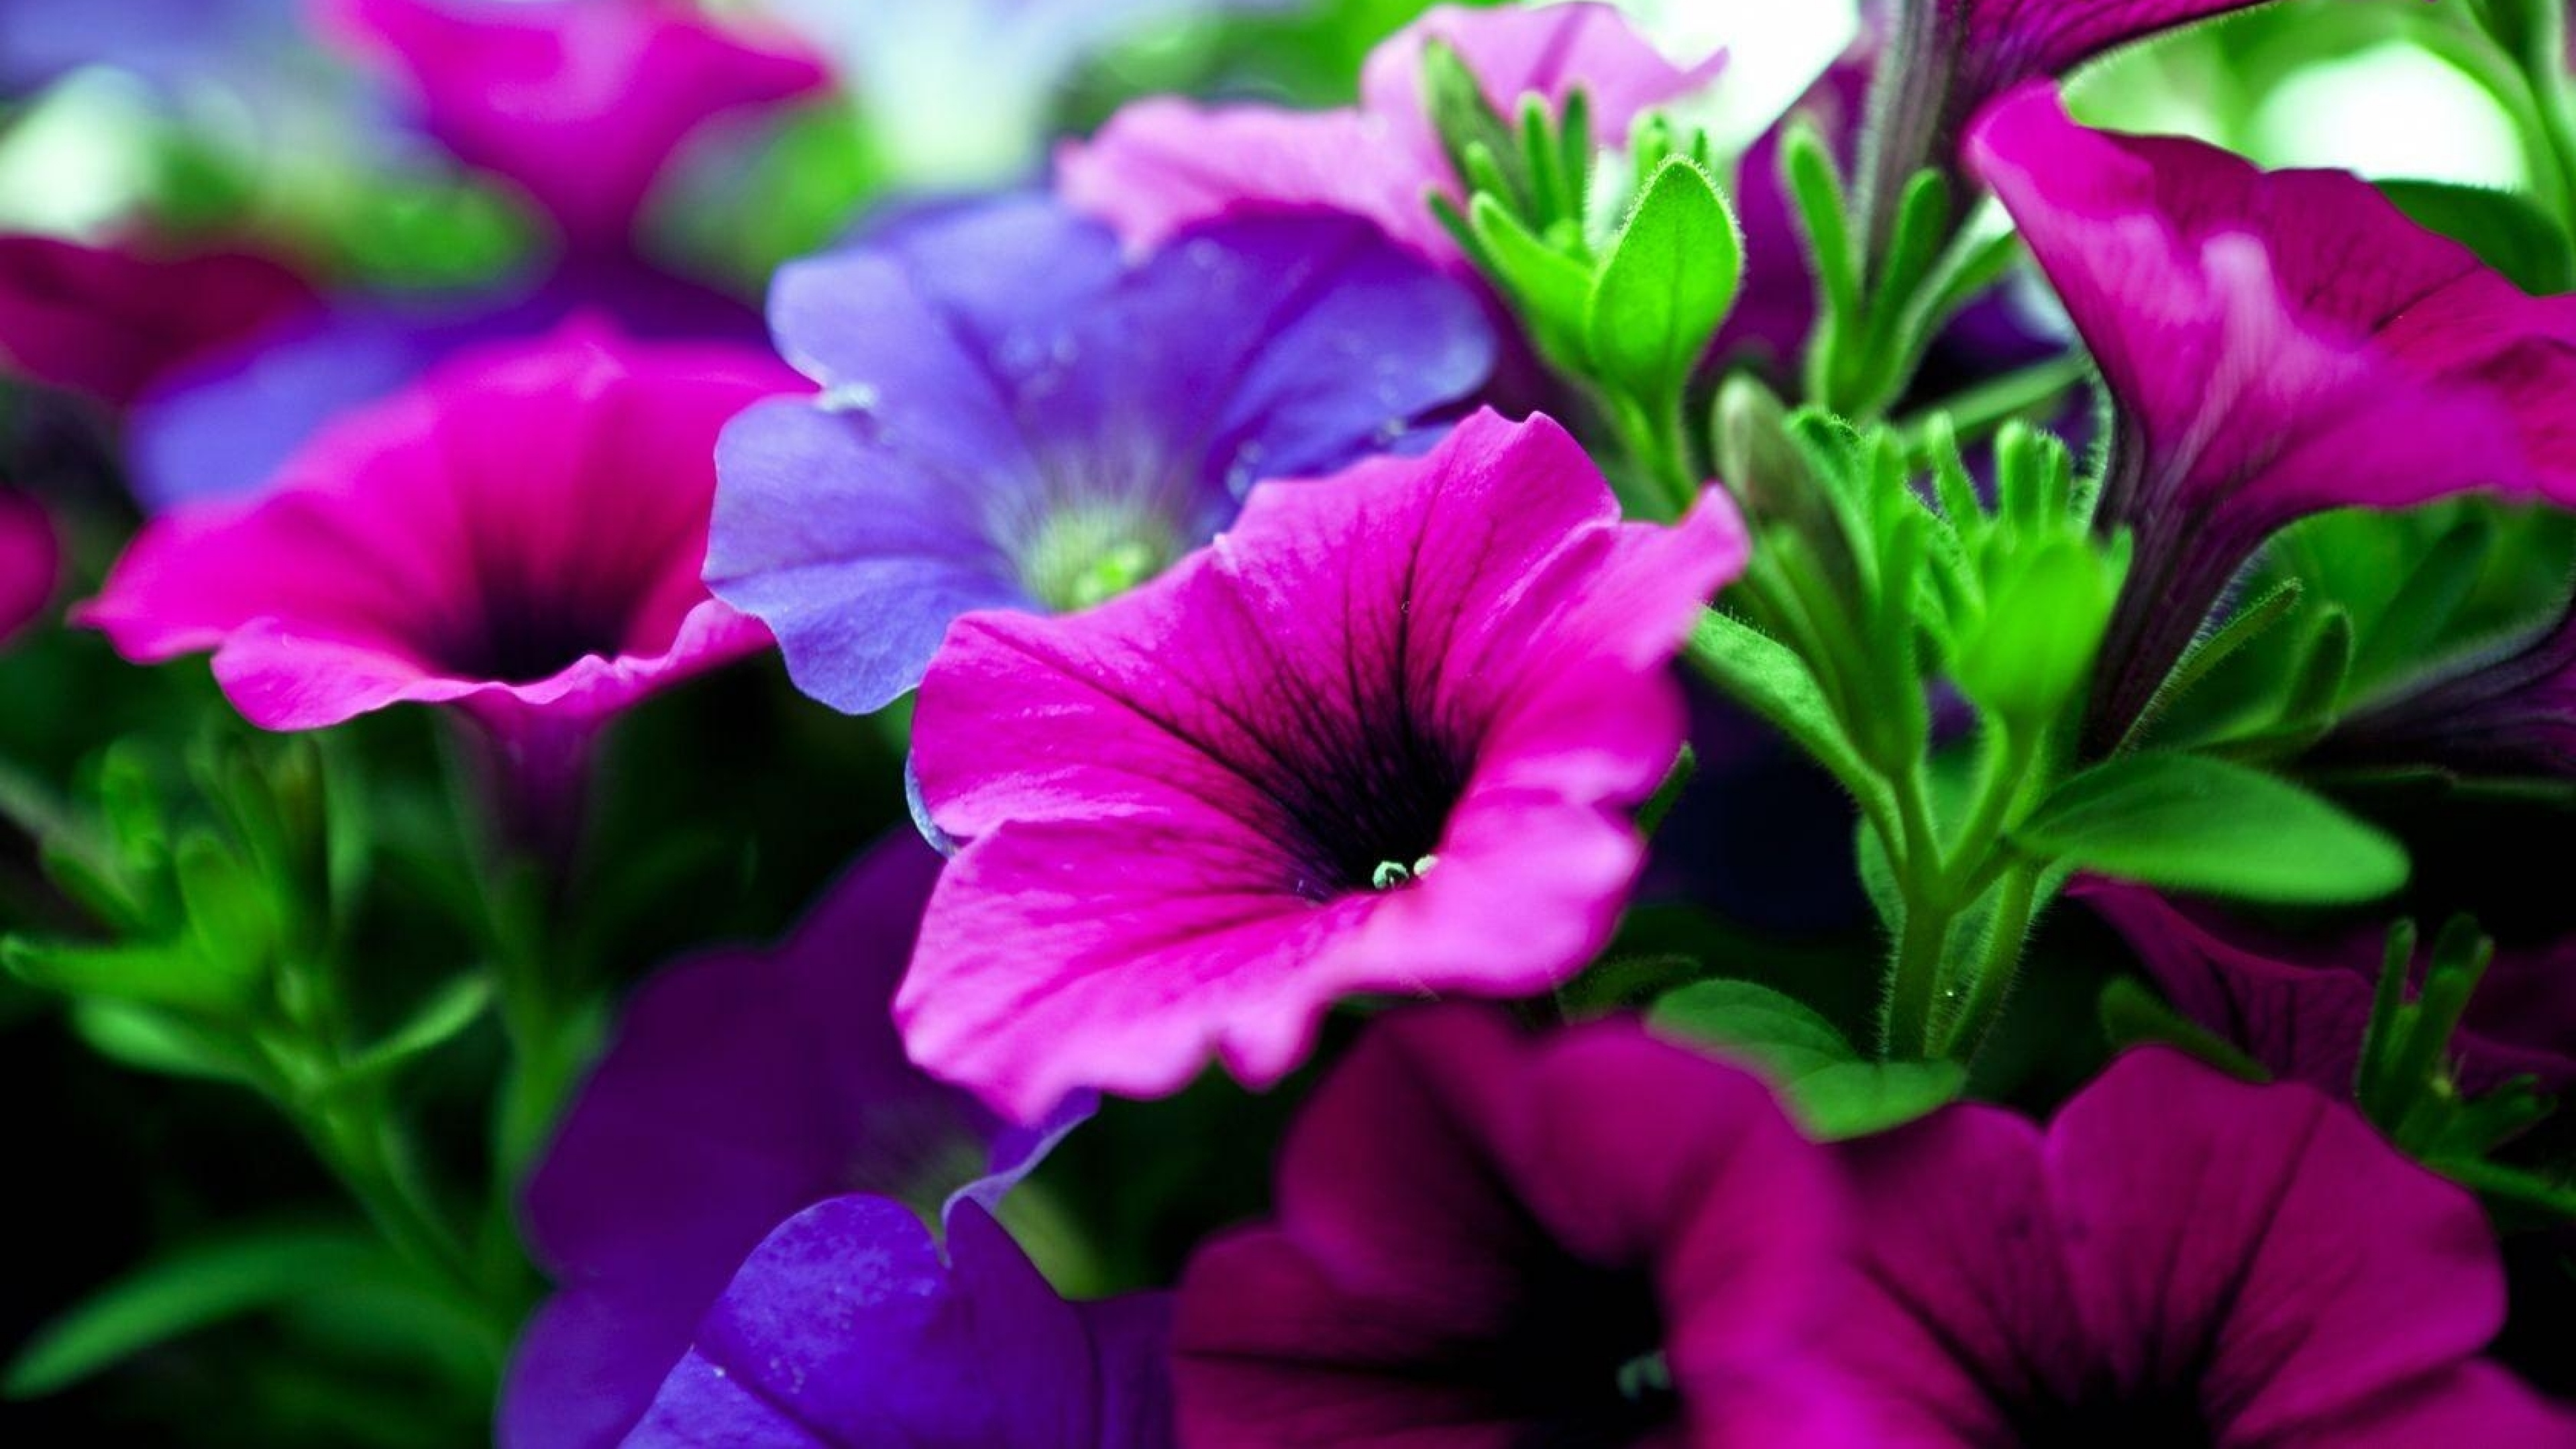 Beautiful Wallpapers For Iphone X Petunias Flowers Pink And Purple Tree With Green Leaves